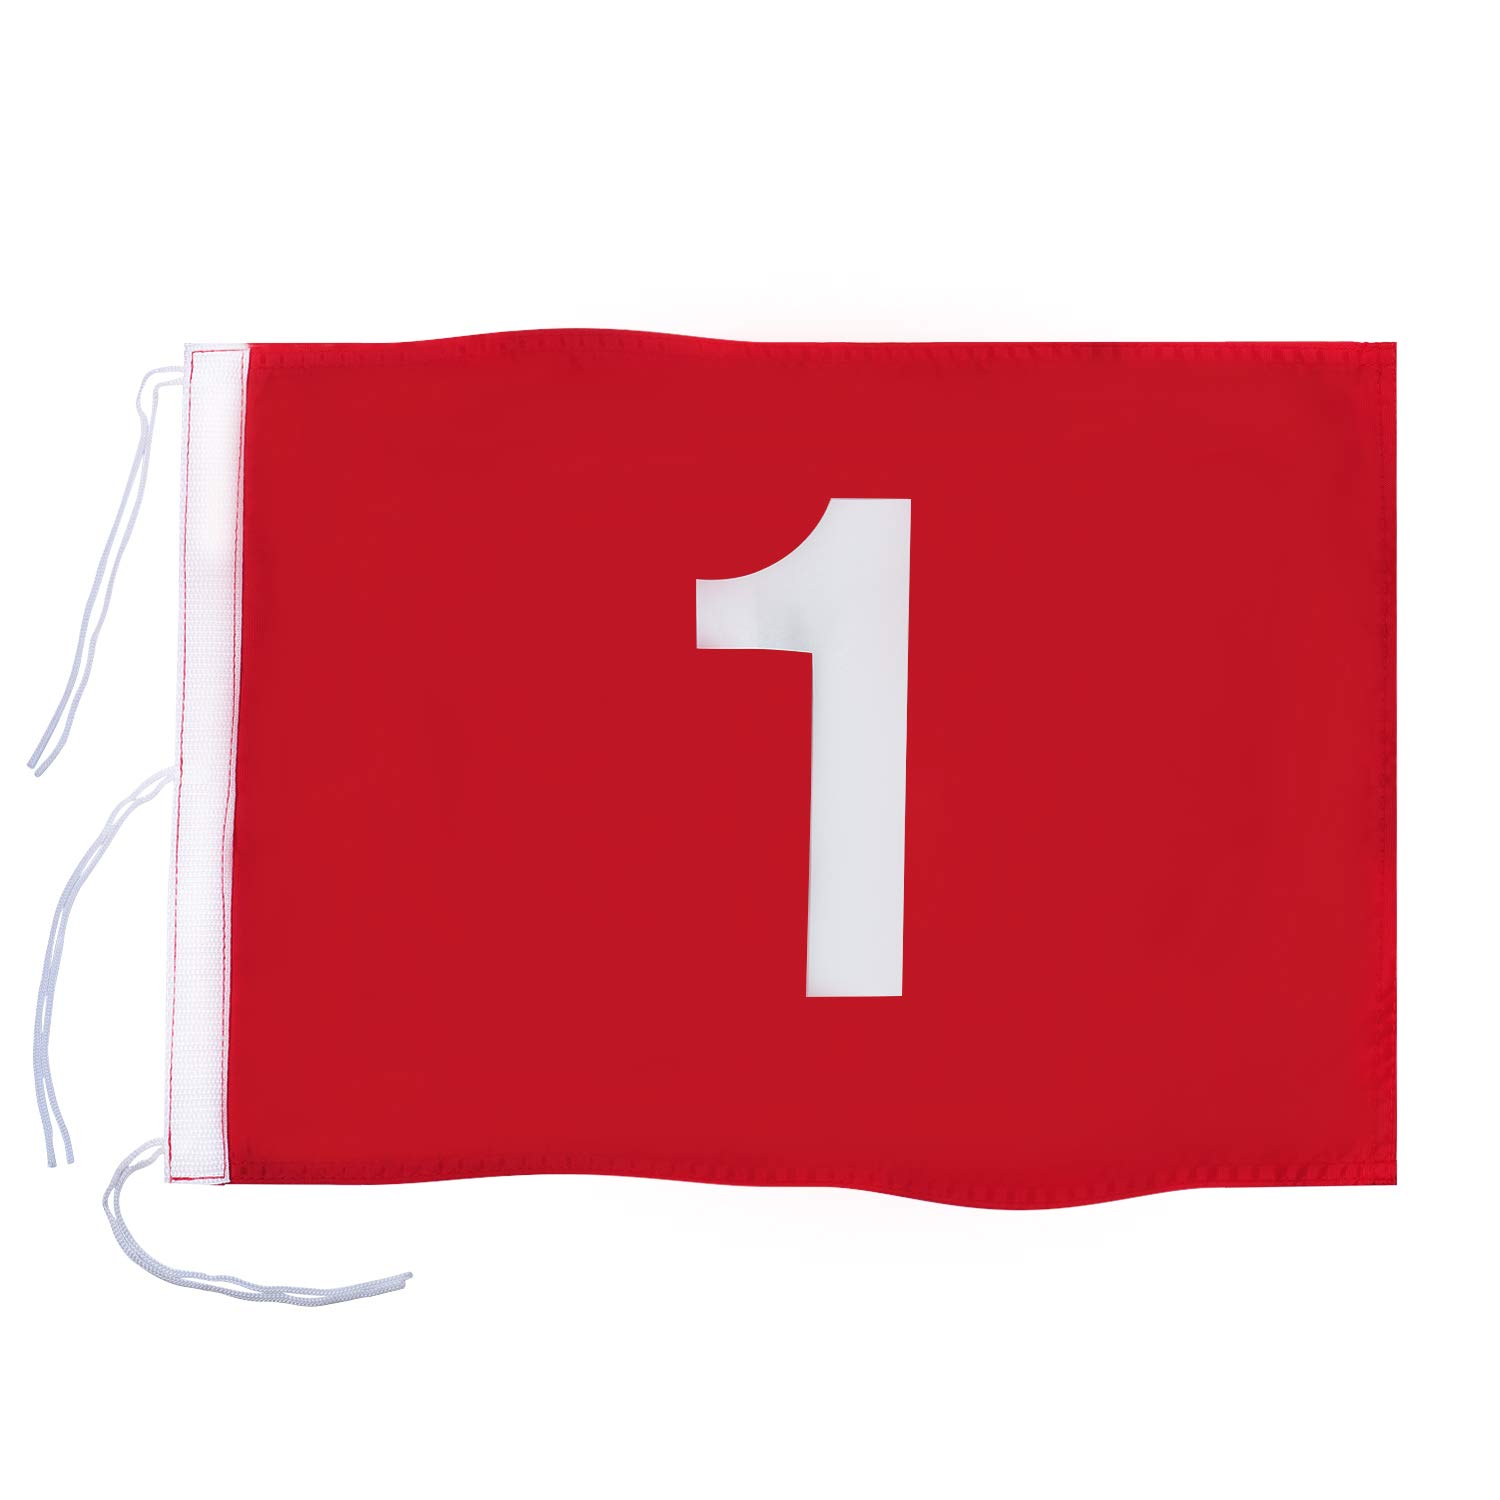 KINGTOP Numbered Golf Flag with Secure Strings, 13'' L x 20'' W, 420D Nylon, Red 1 by KINGTOP